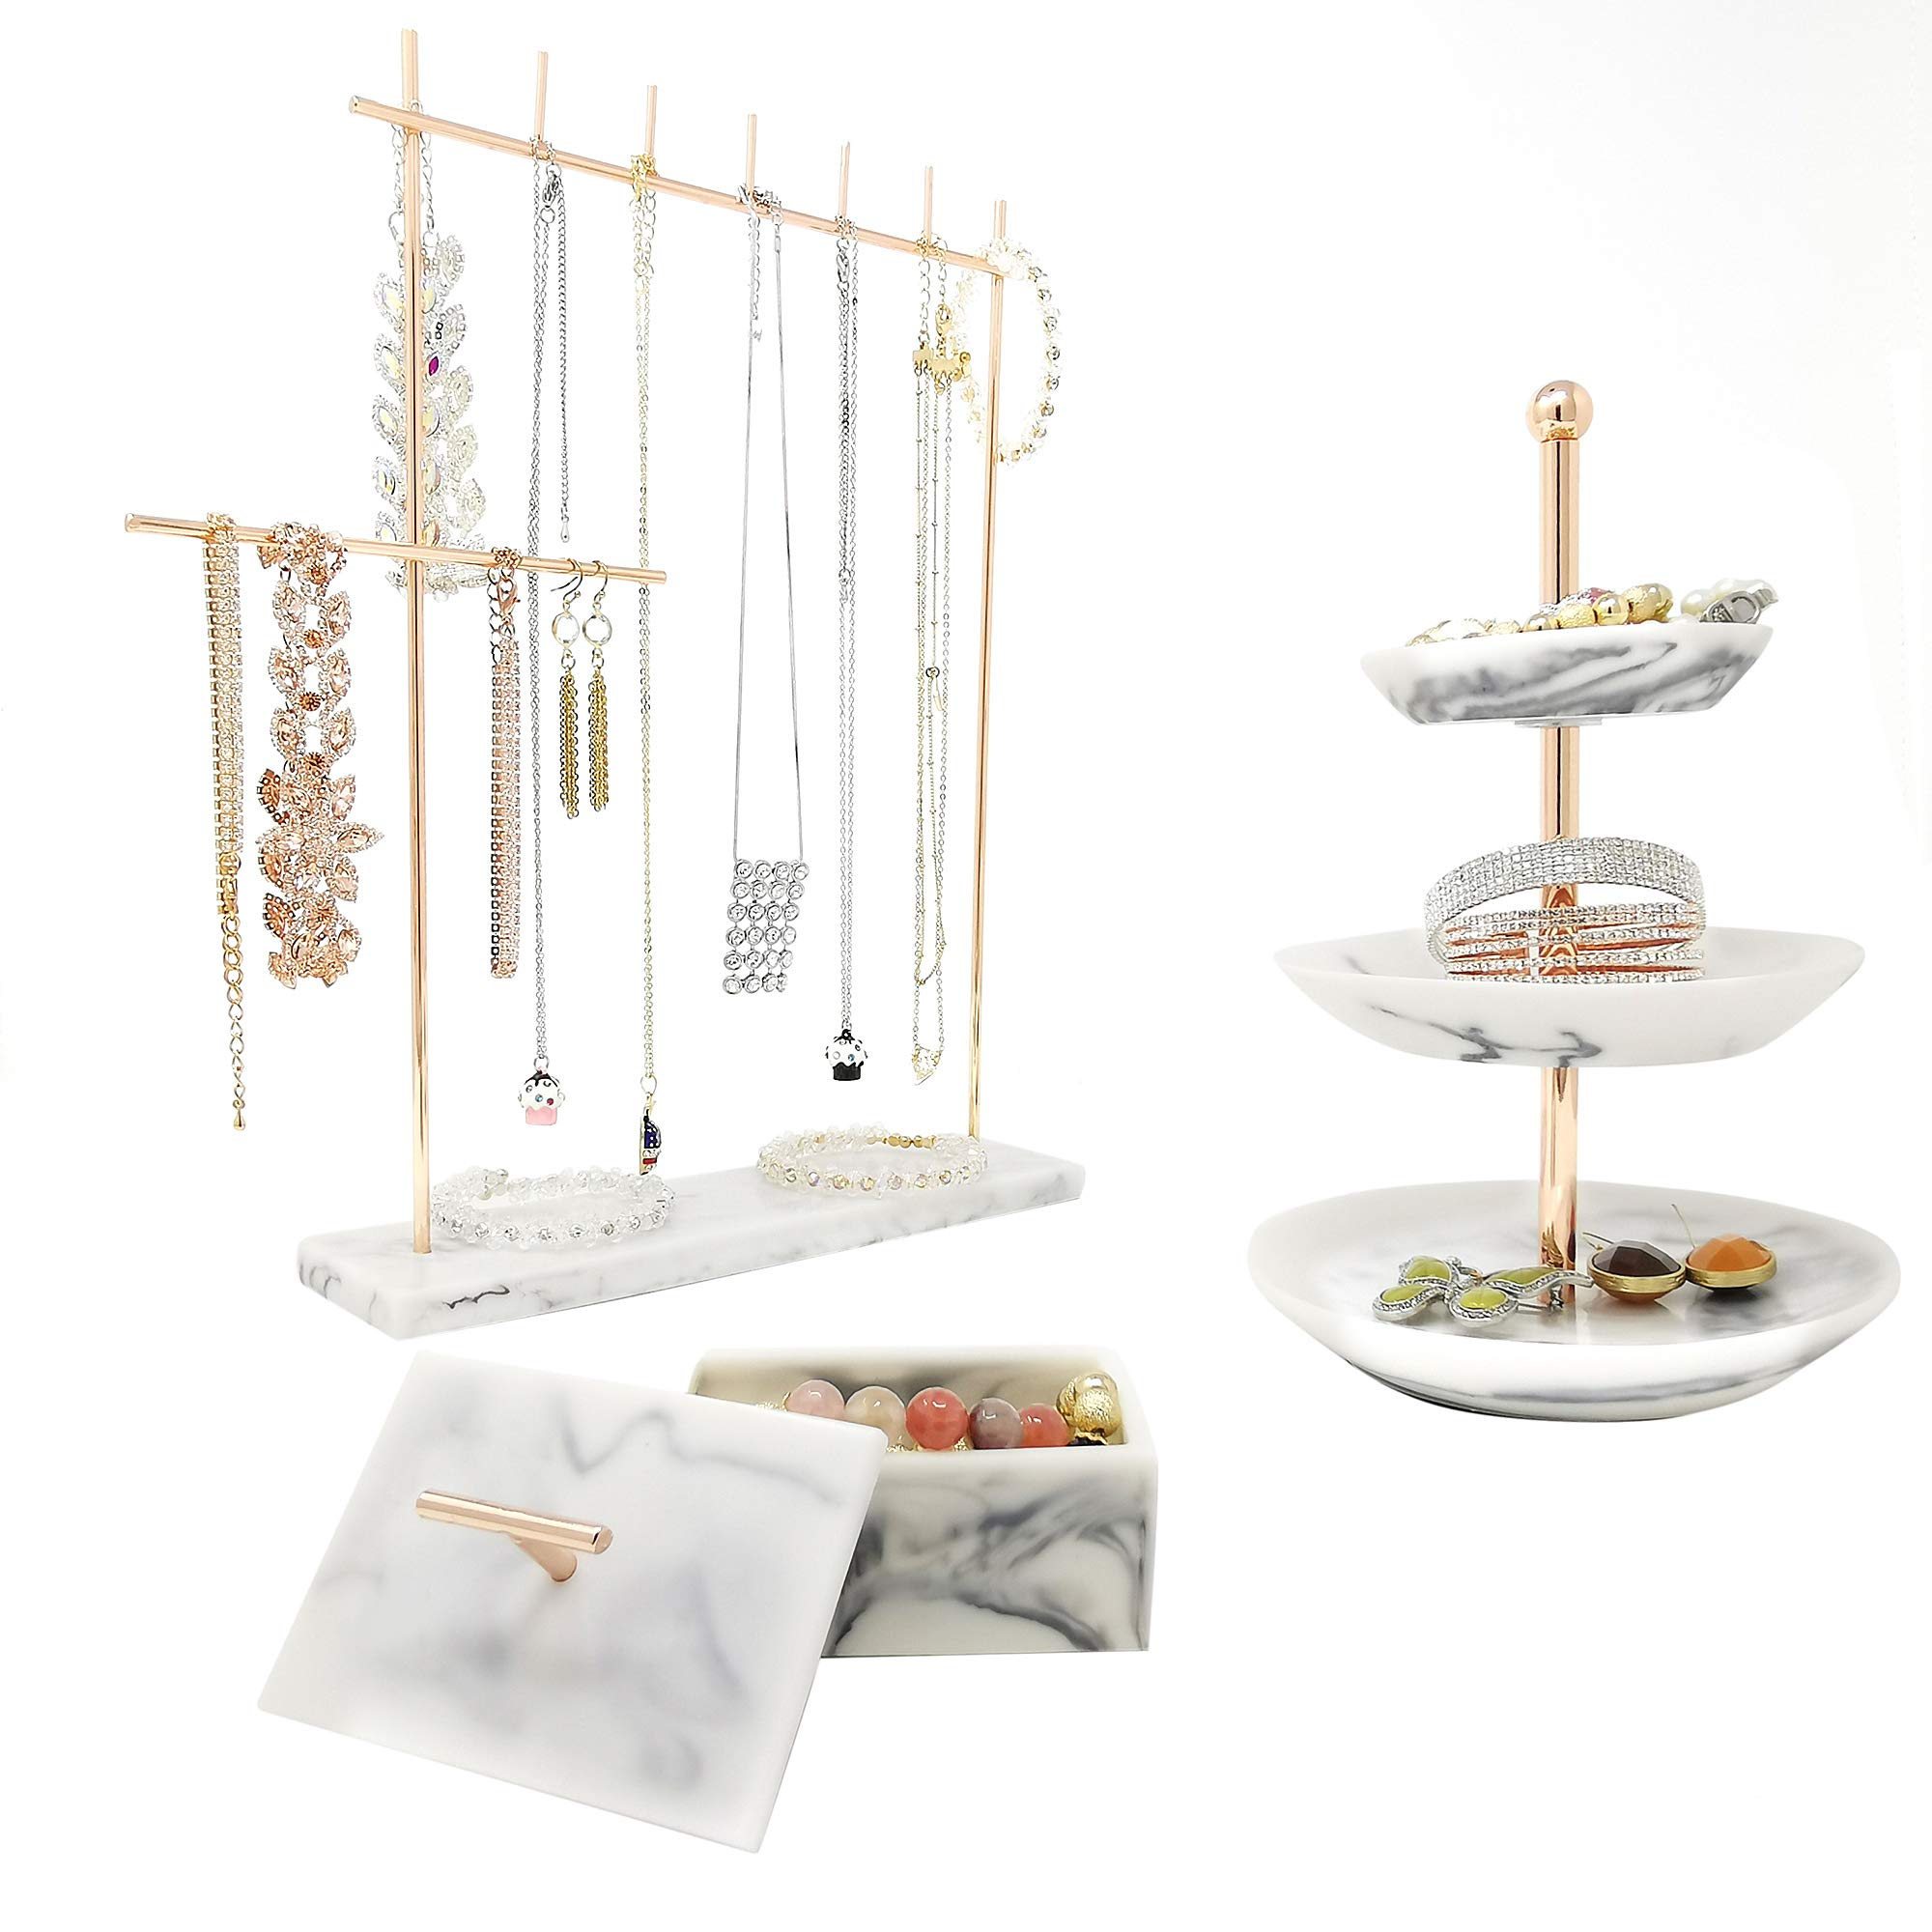 Rose Gold Jewelry Organizer Set 3 - Easily Organize Necklaces Earrings Rings Bracelets - Incl. 12.5'' H Jewelry Rack, 3 Tier Ring Holder Dish, Jewellery Trinket Box for Women